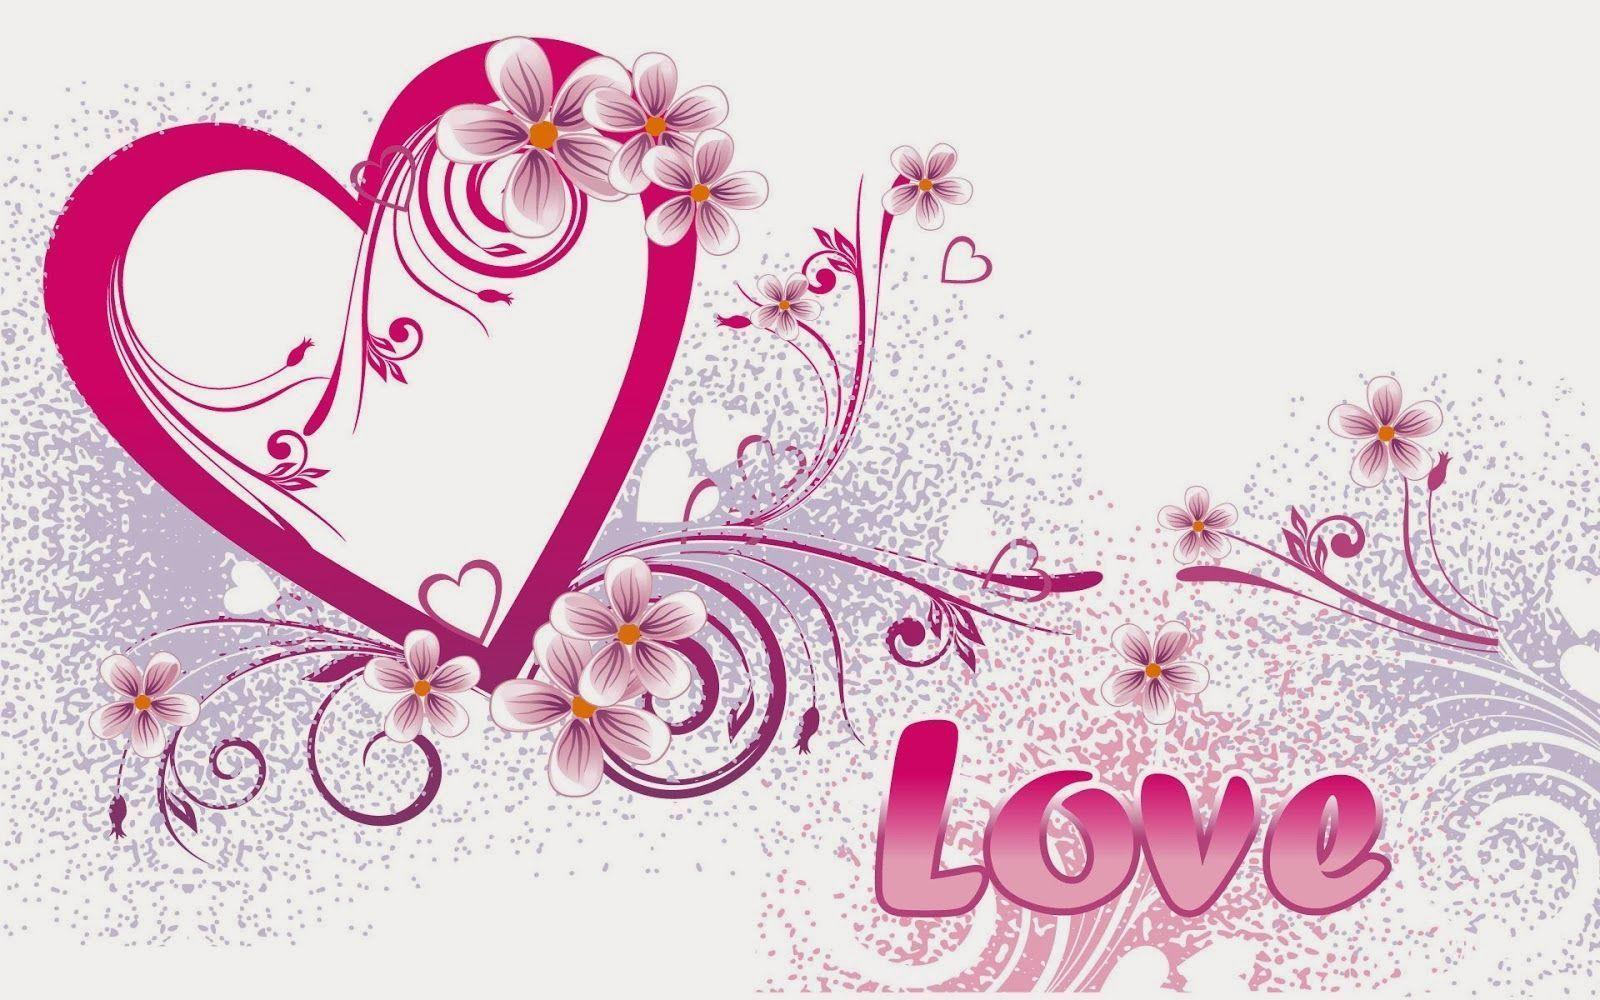 Valentine day wallpapers 2015 wallpaper cave valentines day greetings 2015 colection 1 happy valentines day 2015 m4hsunfo